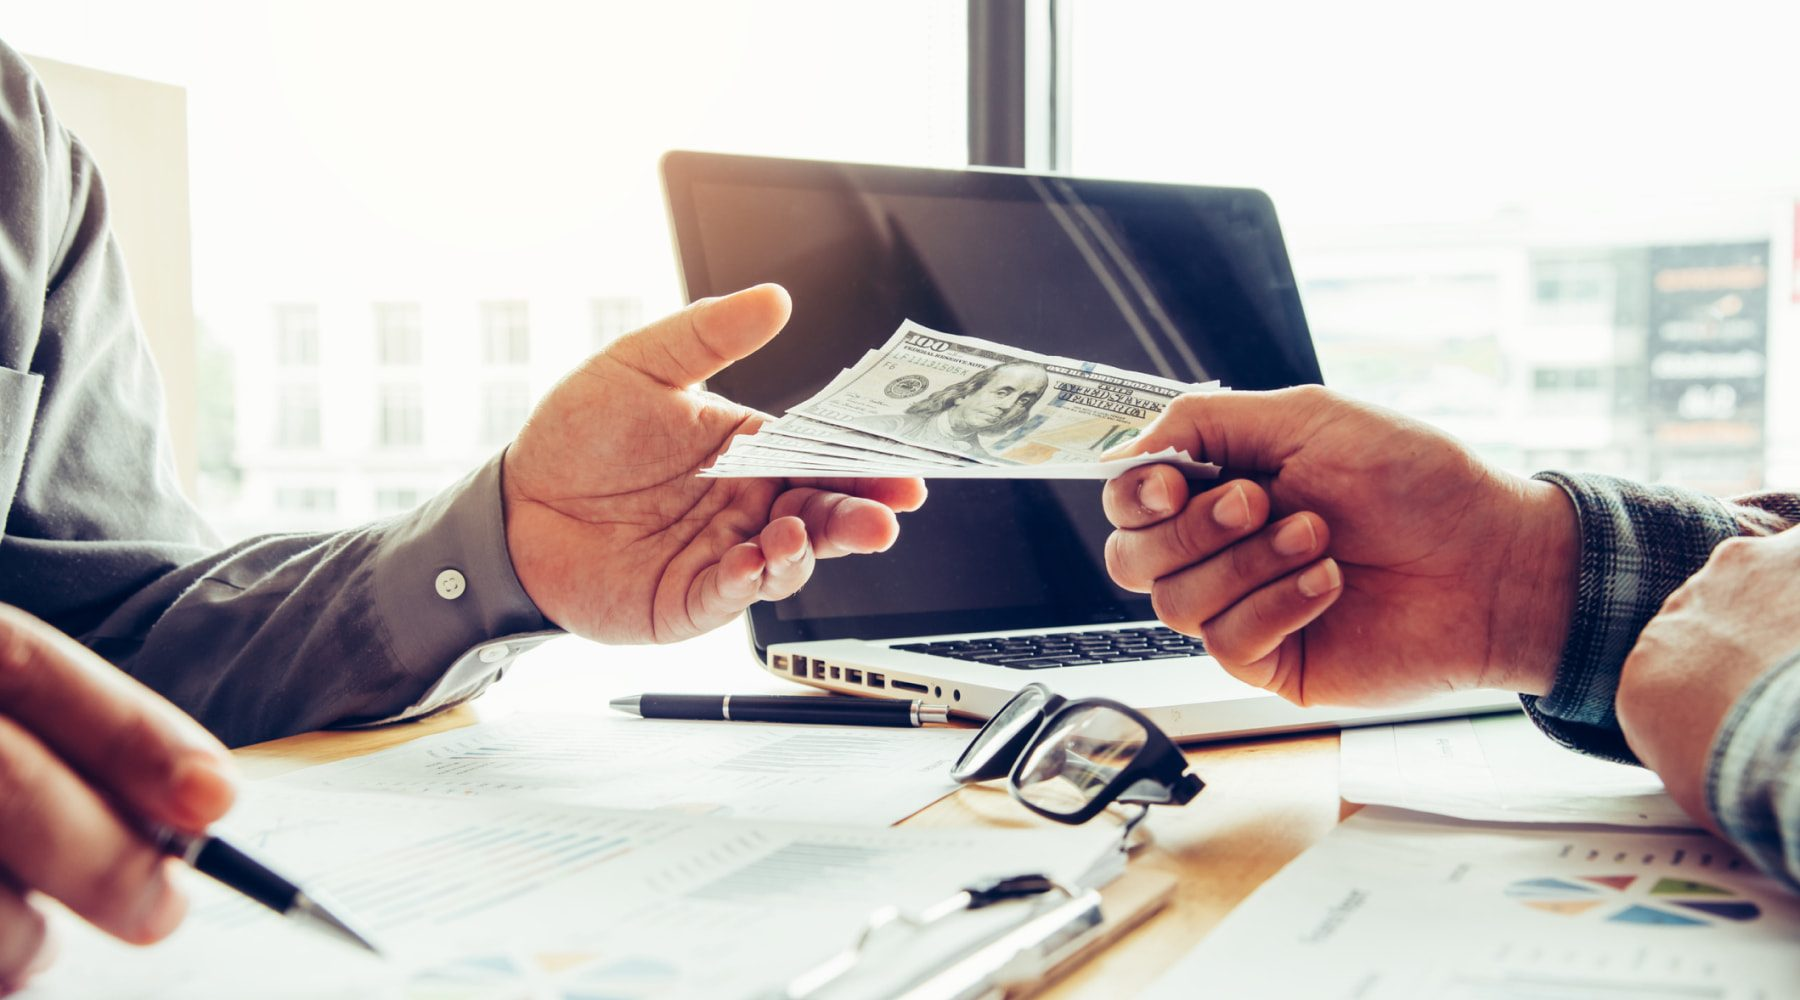 Permanent life insurance policyholders can now funnel more money into cash value